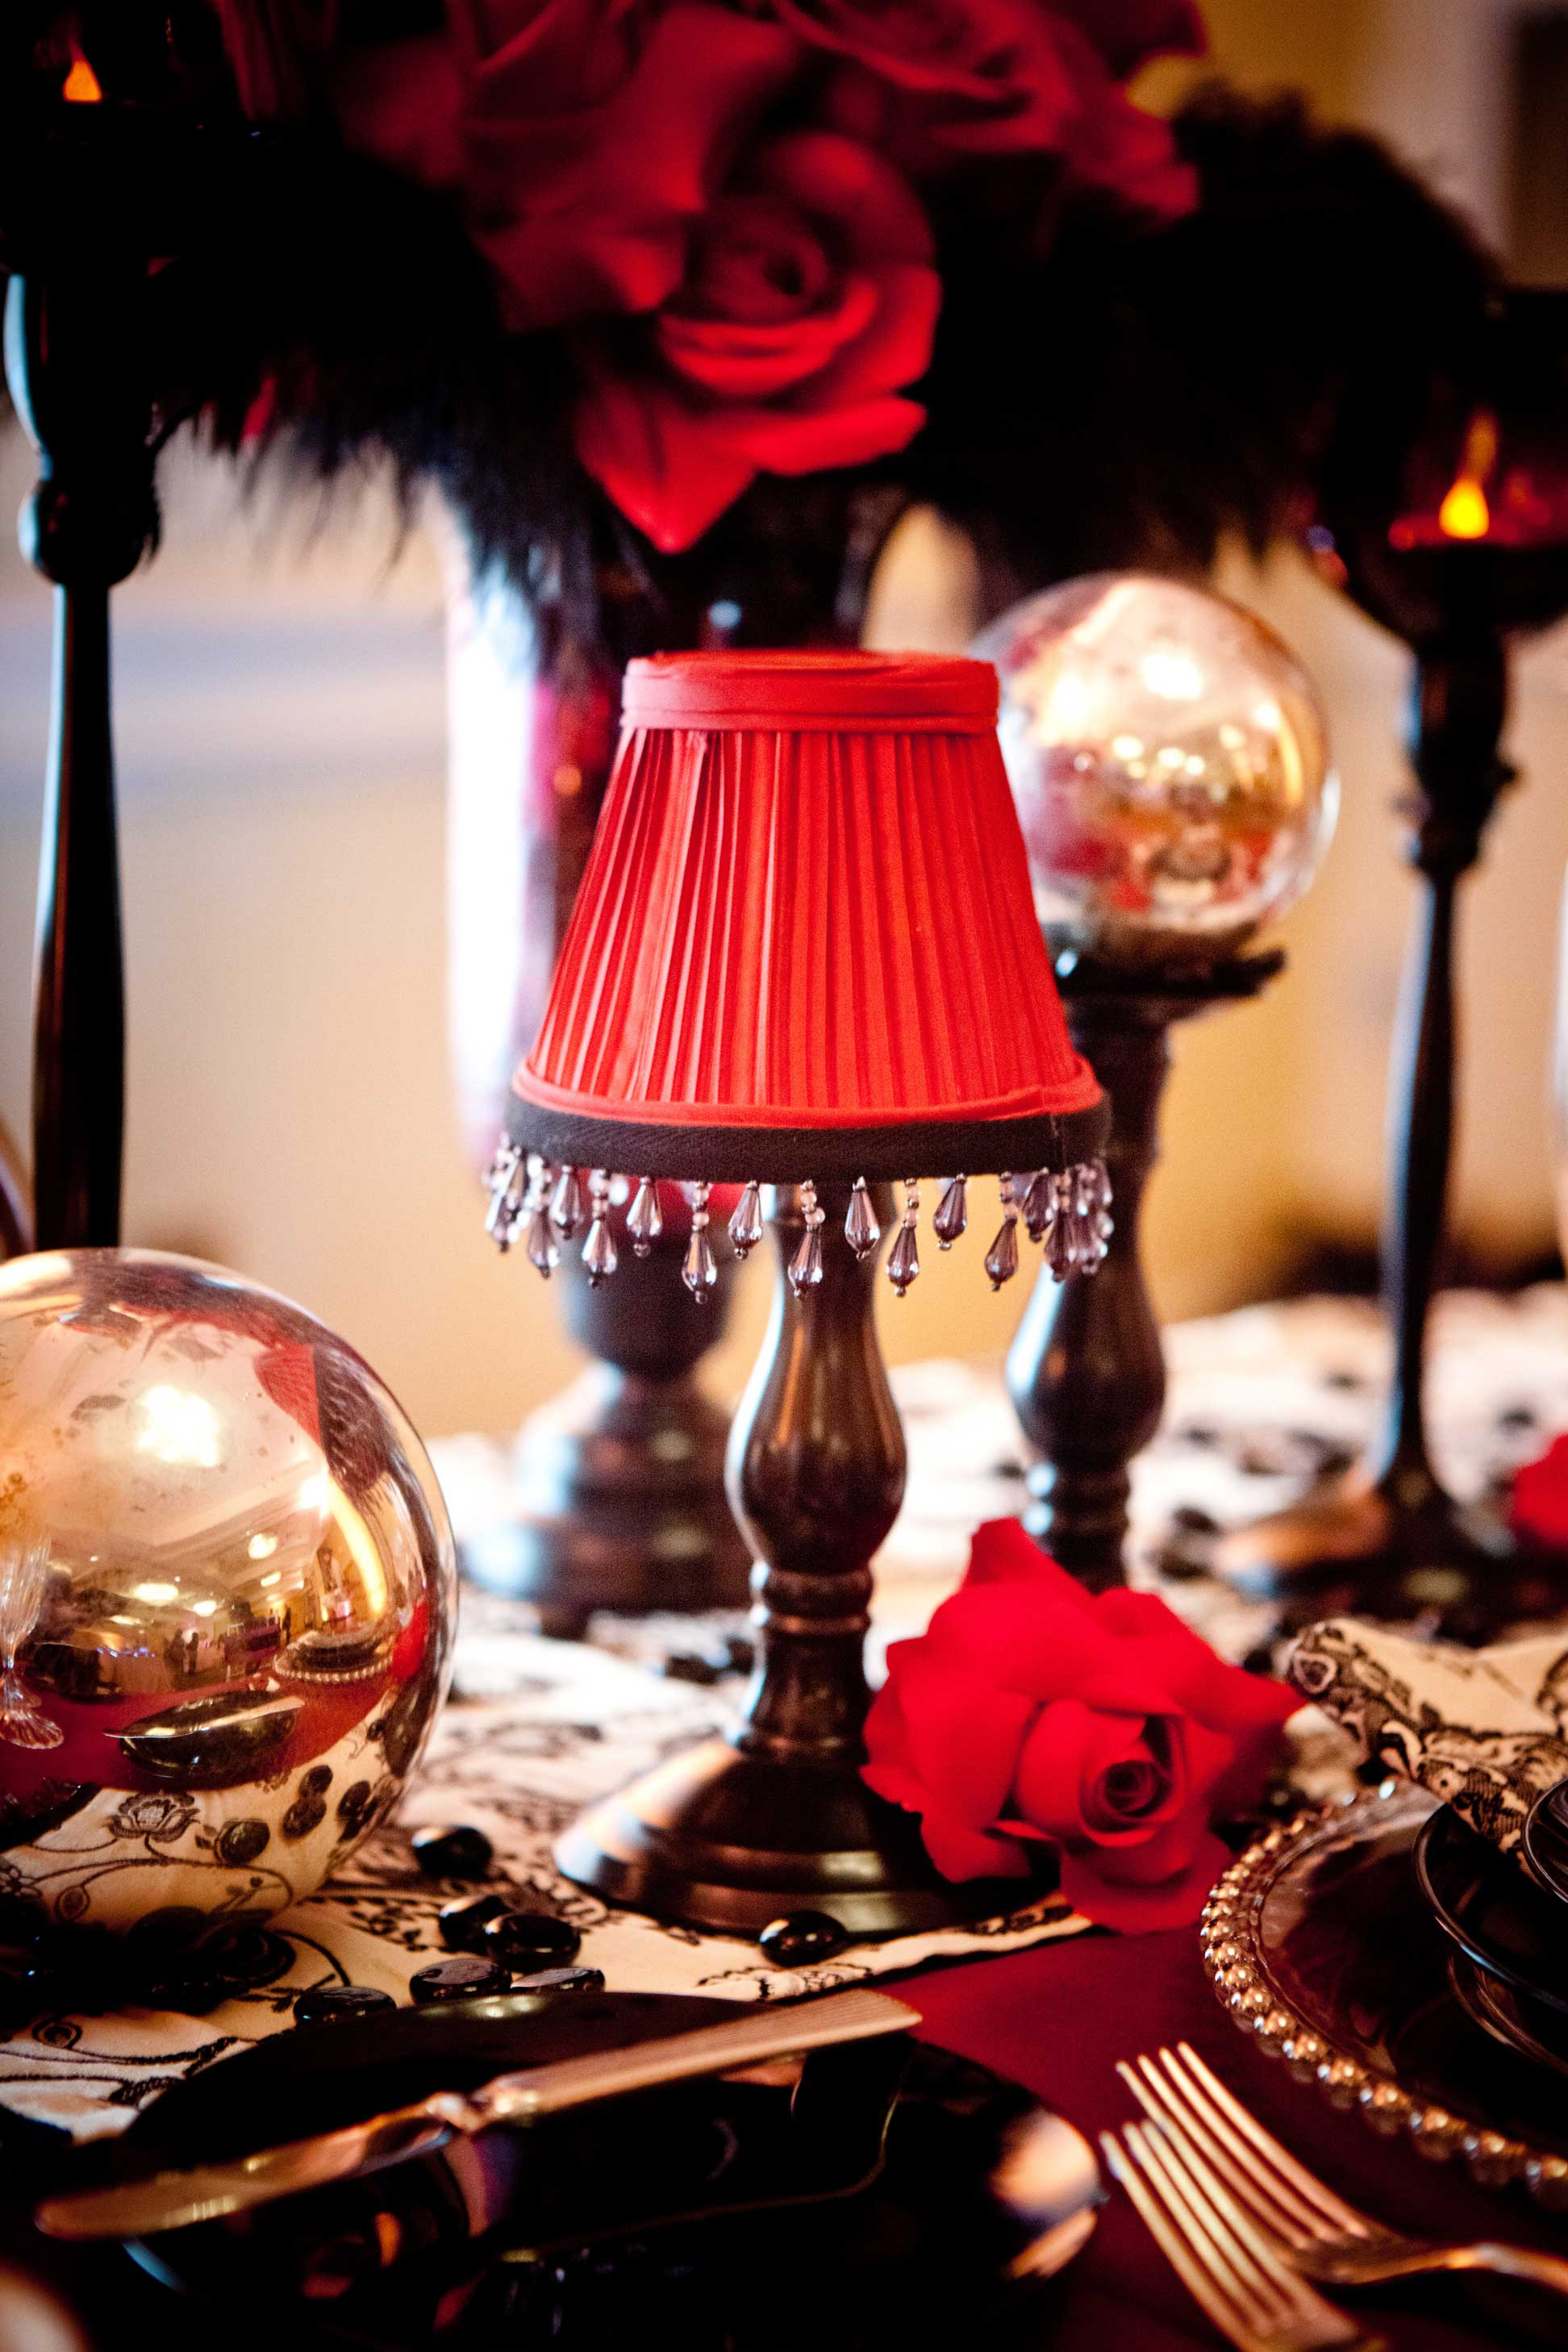 Cabaret The Hitching Post - Cabaret table lamps